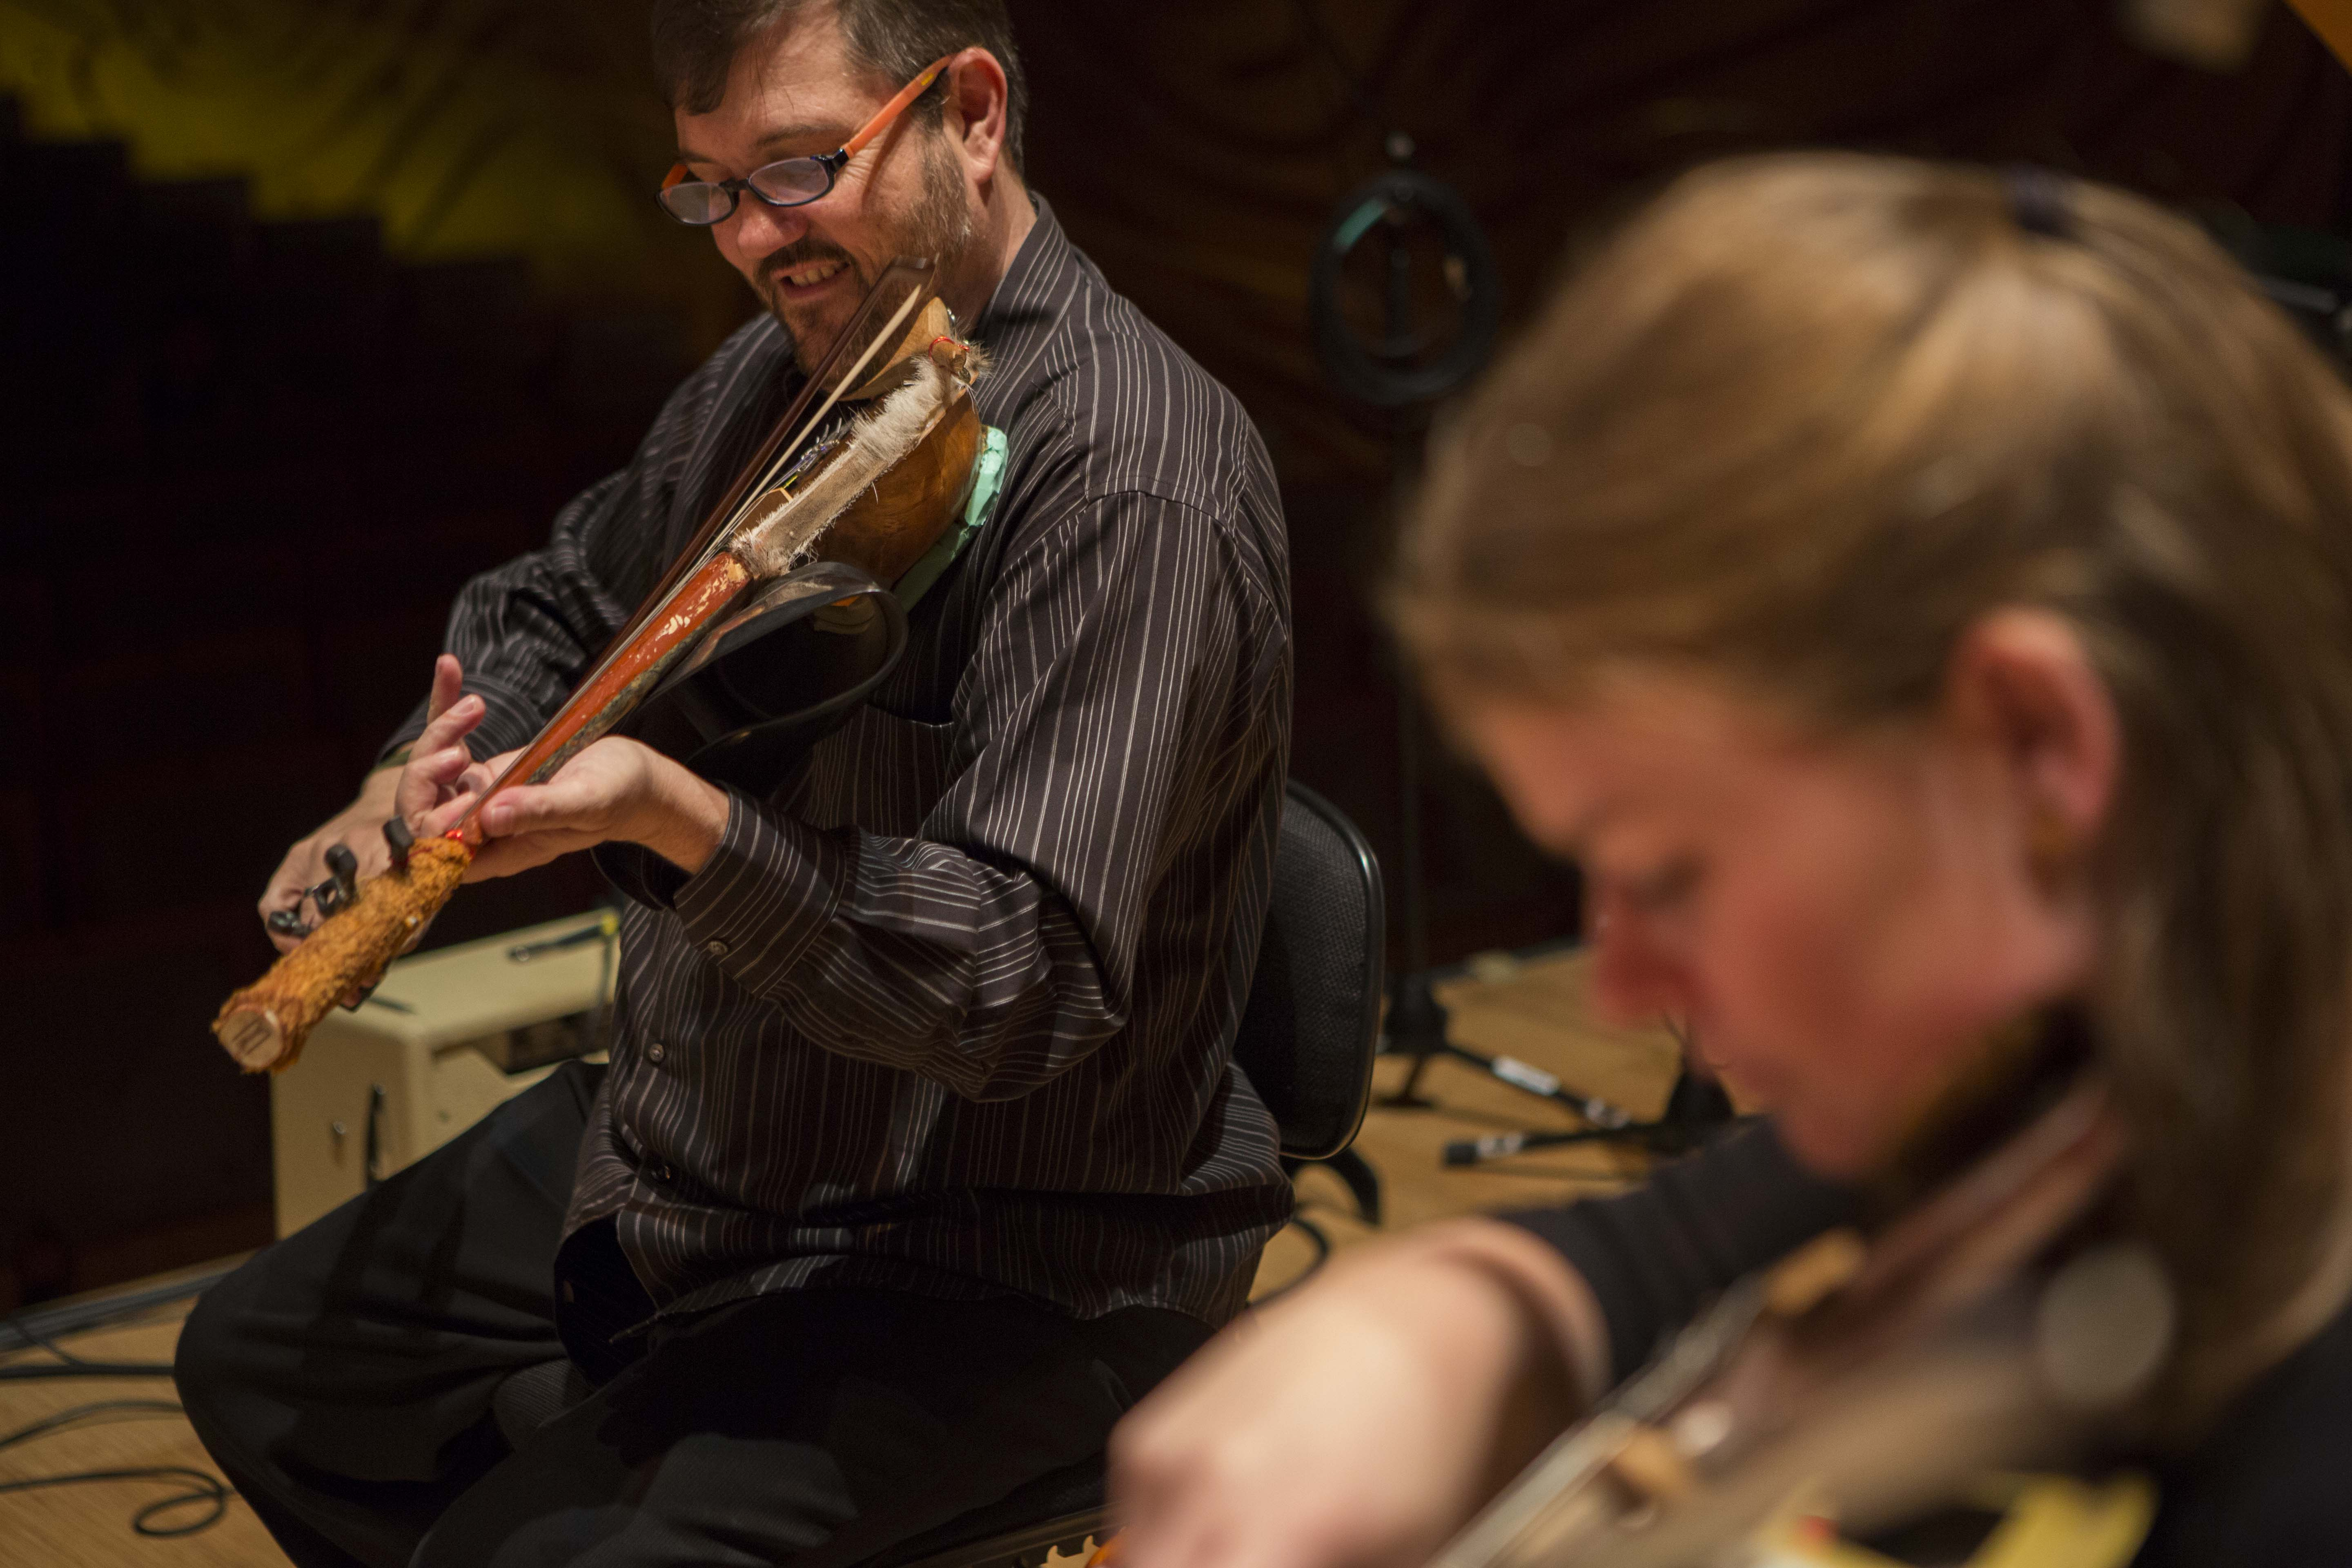 Graeme Jennings and Phoebe Green, ELISION strings